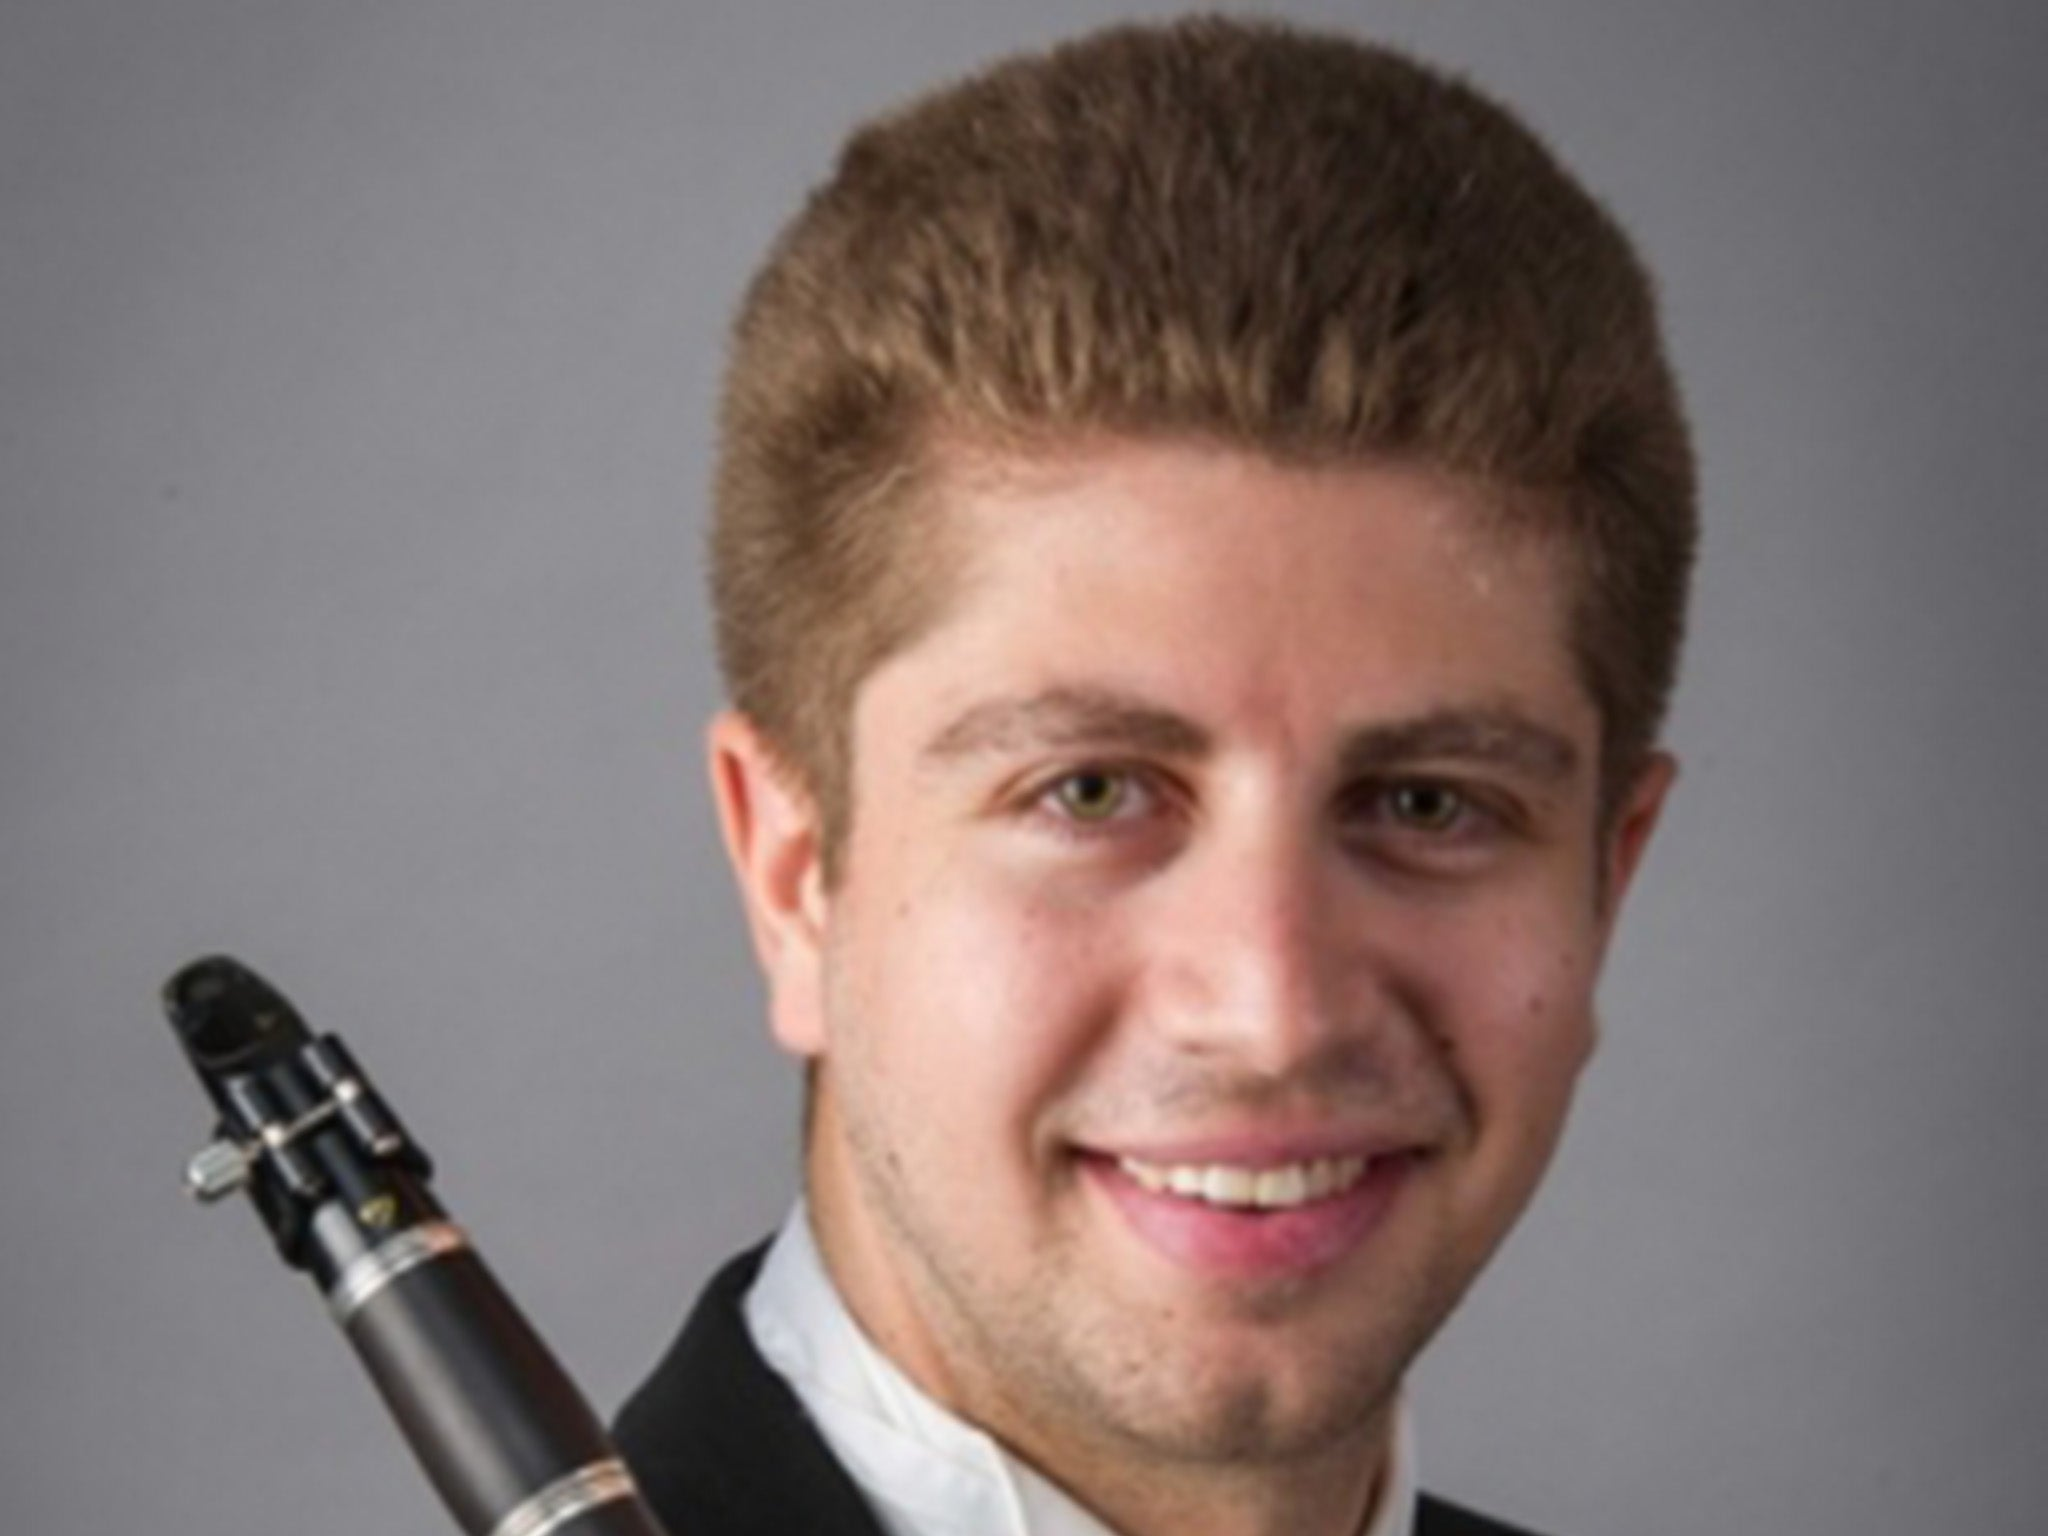 Young musician's career sabotaged by ex-girlfriend who secretly deleted his scholarship acceptance letter